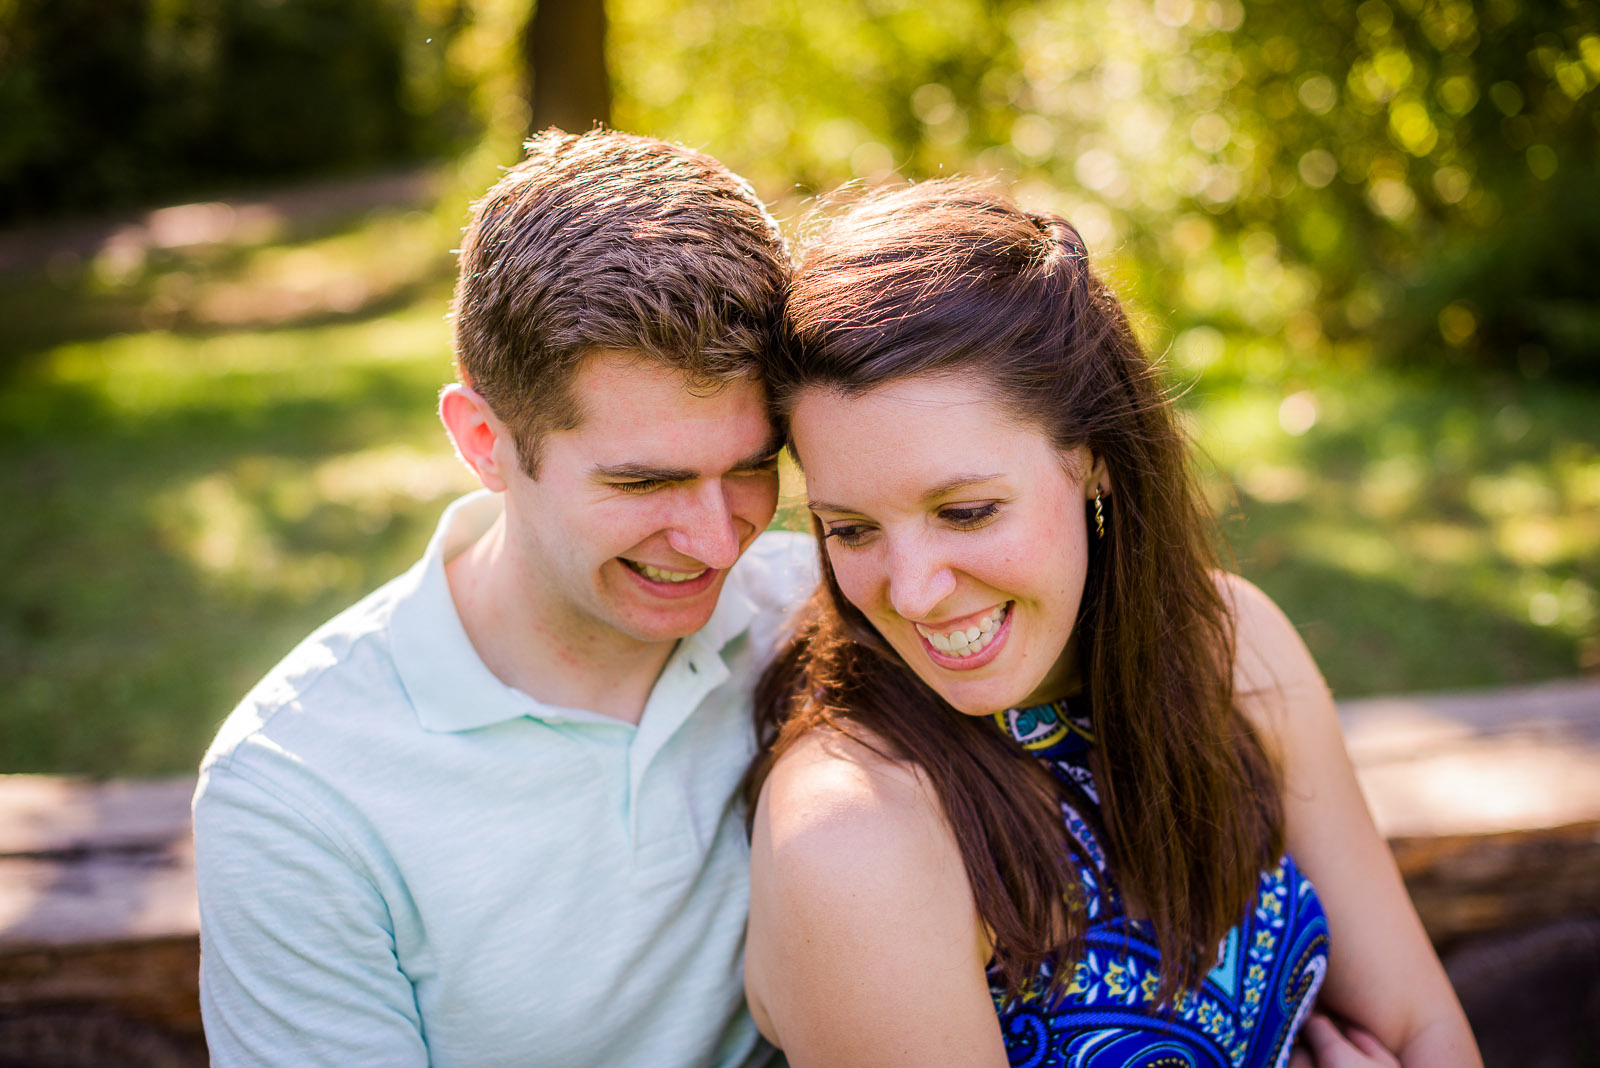 Eric_and_Christy_Photography_Blog_2016_Best_Engagement--6